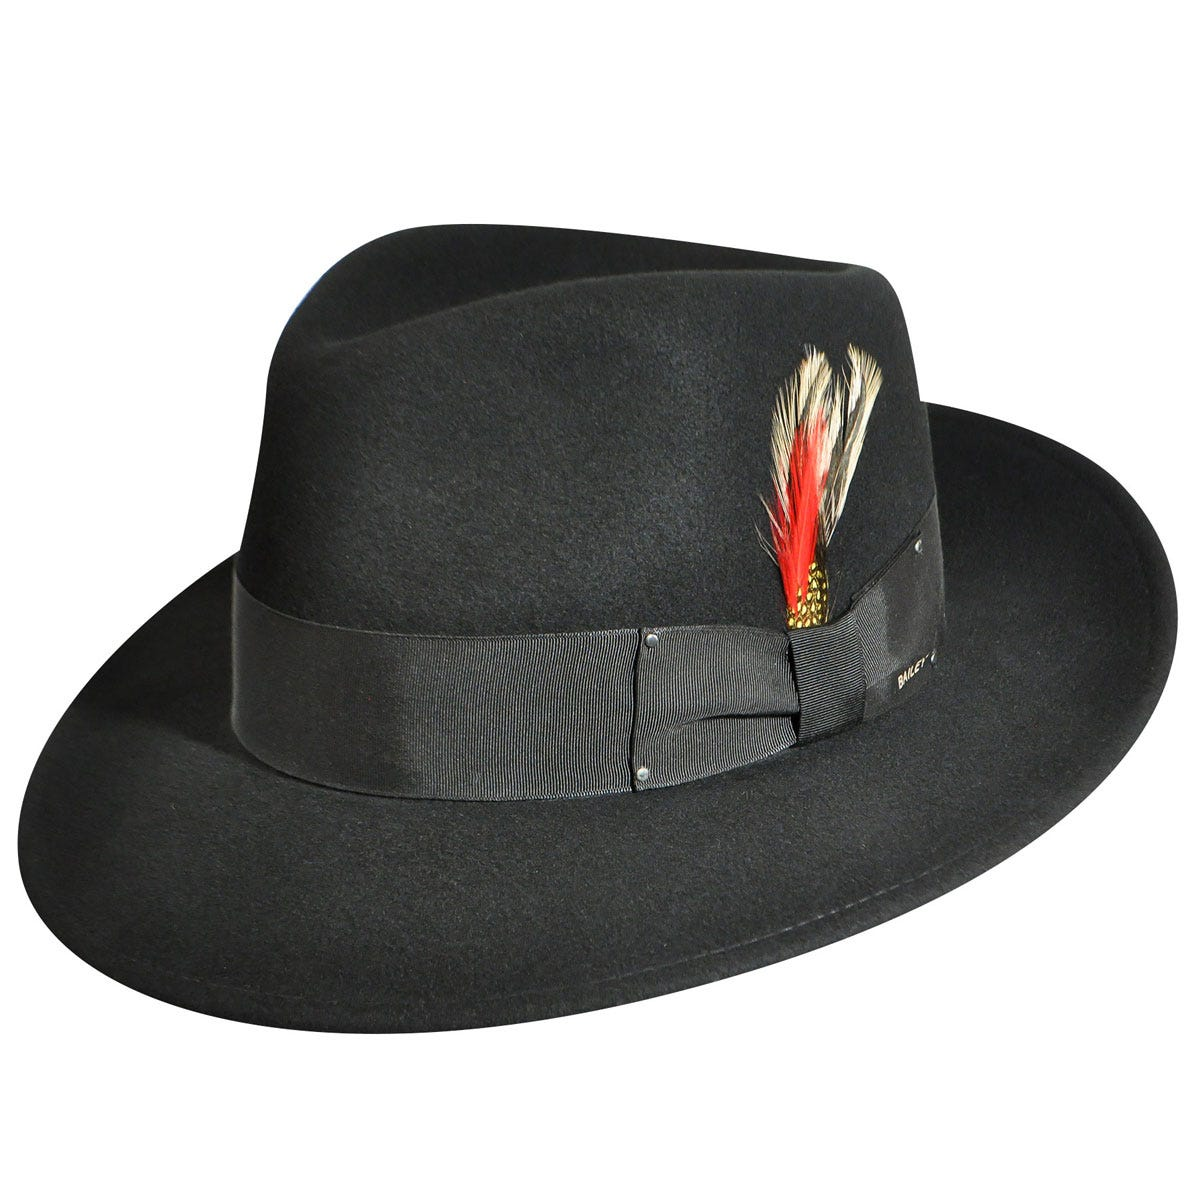 Bailey Large Brim Pinch Front Fedora - Dapperfam.com